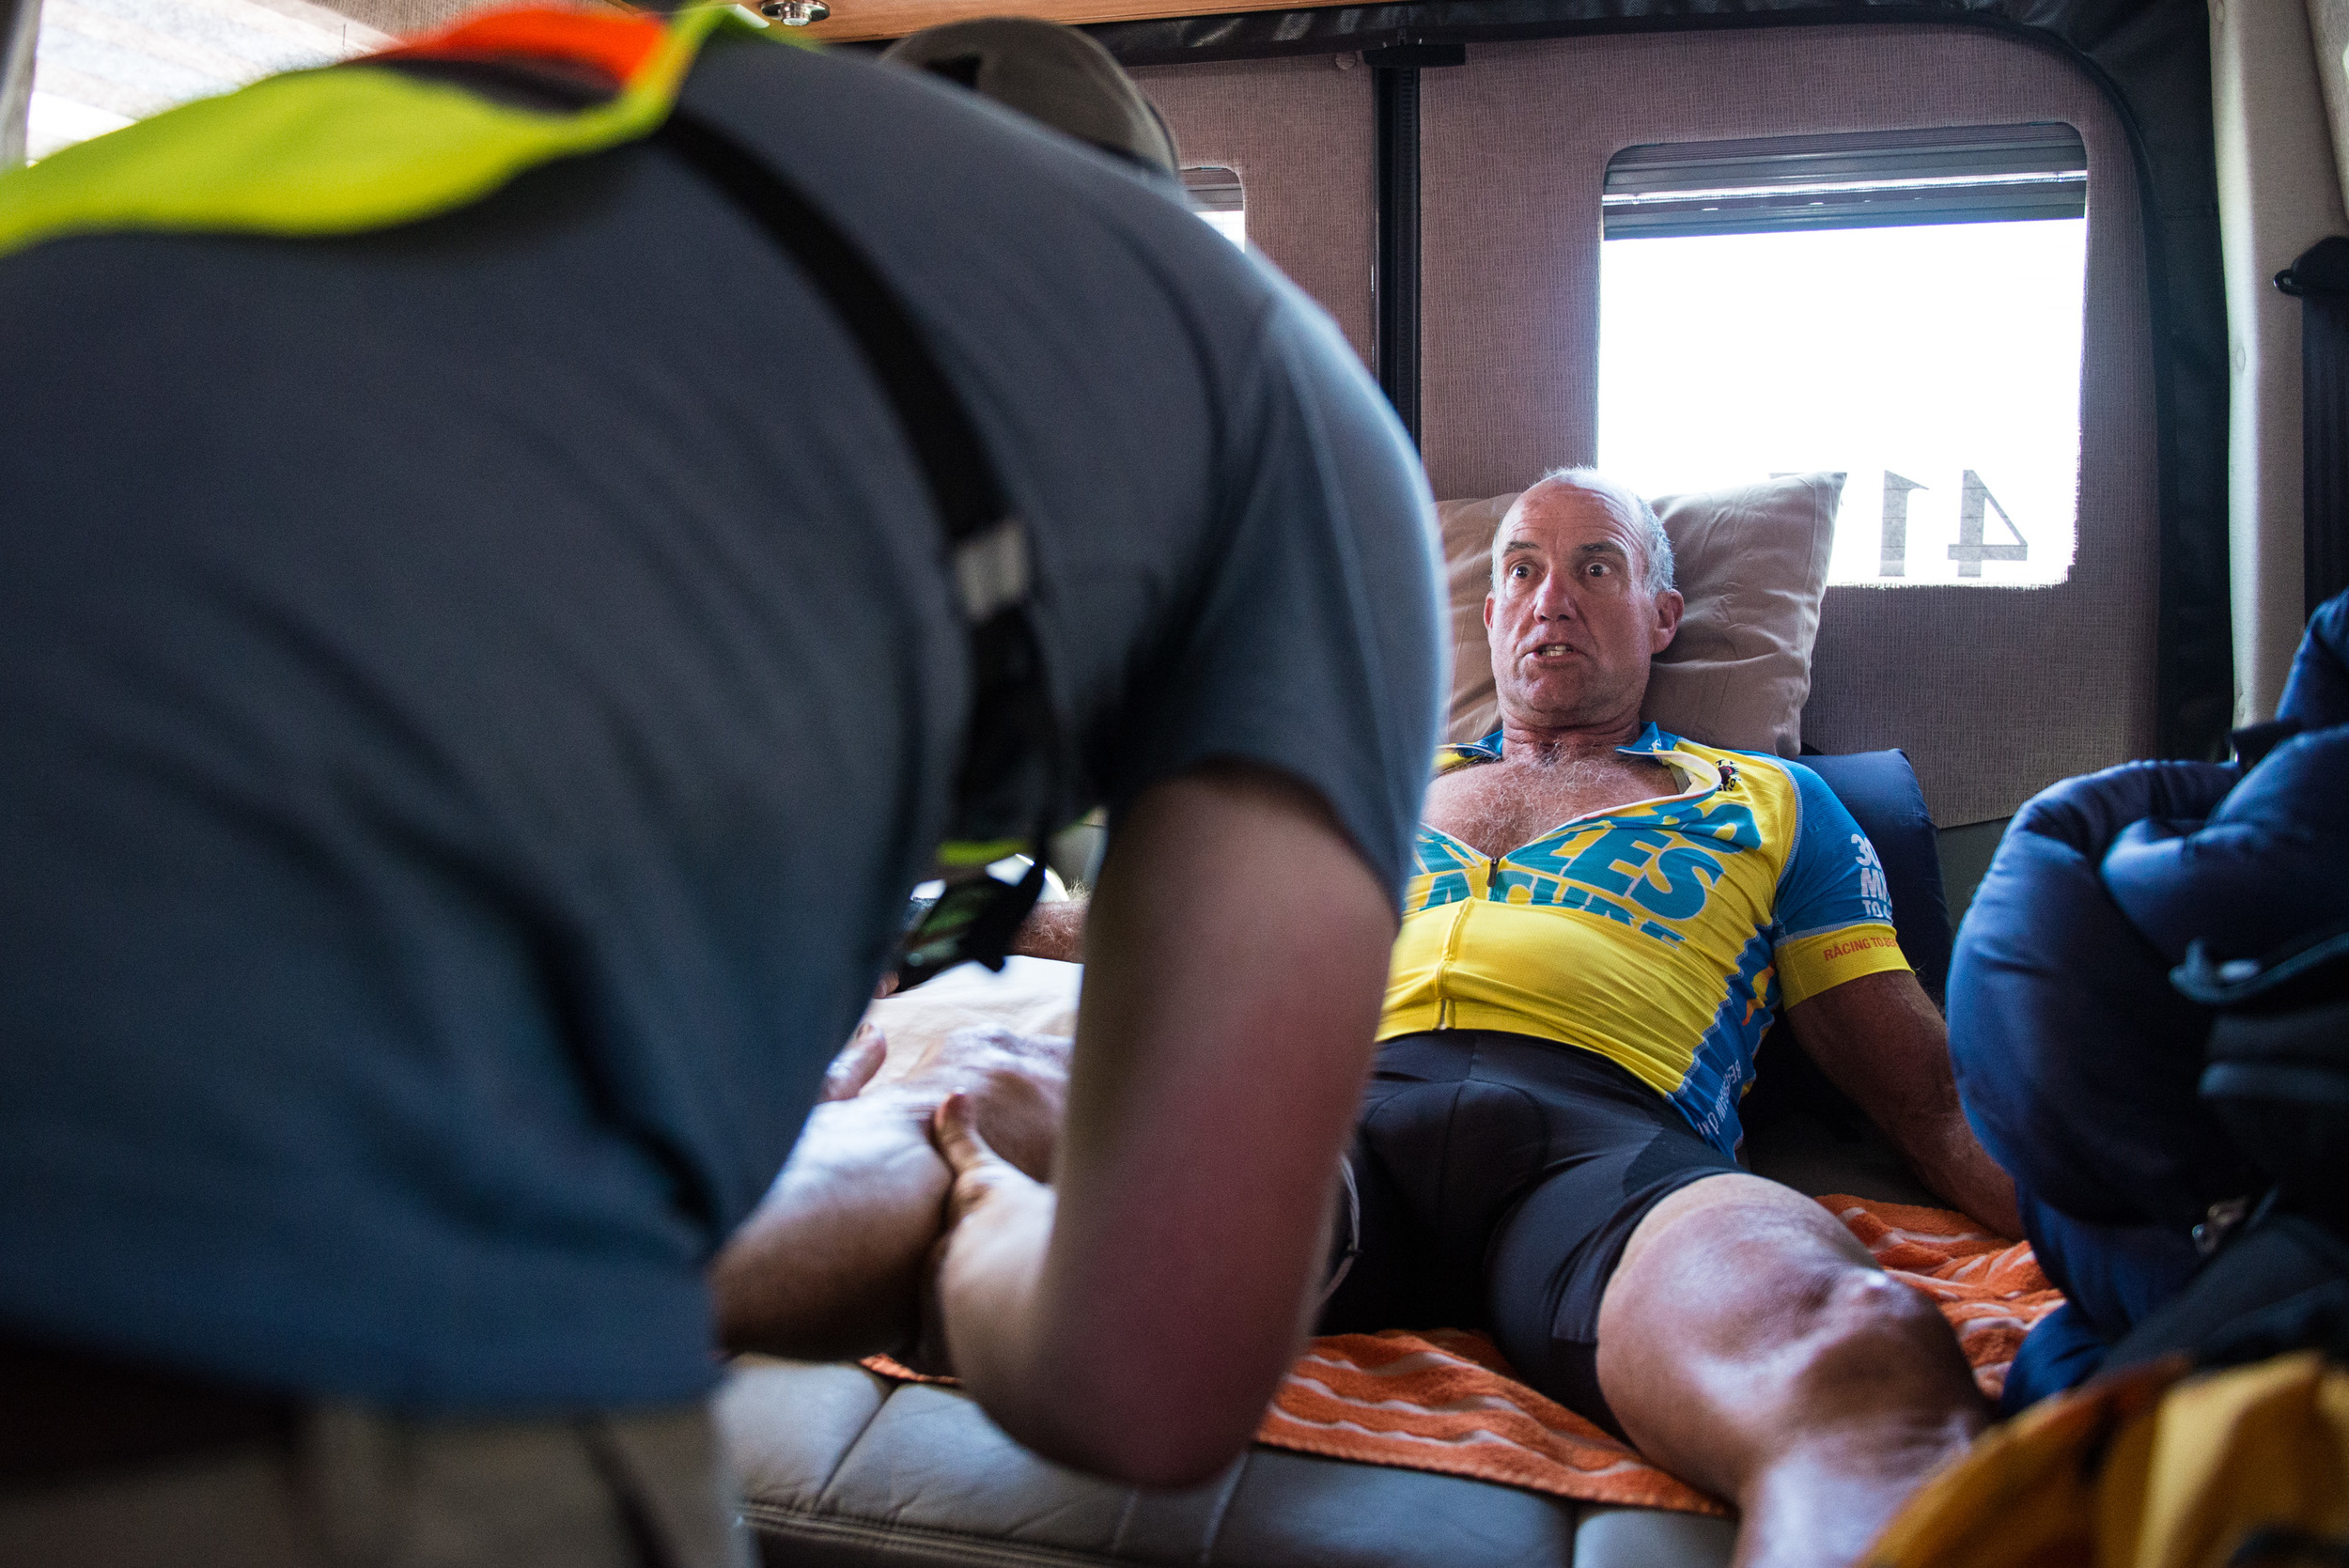 Cramps plagued Marshall through the first several days of the race as he tried to get throught he desert. The intense heat during the day and the frigid nights did not help the cause. Pictured is crew member Jacob Bouchard quickly massaging Marshall in his RV during a stop on June 15th, 2016.